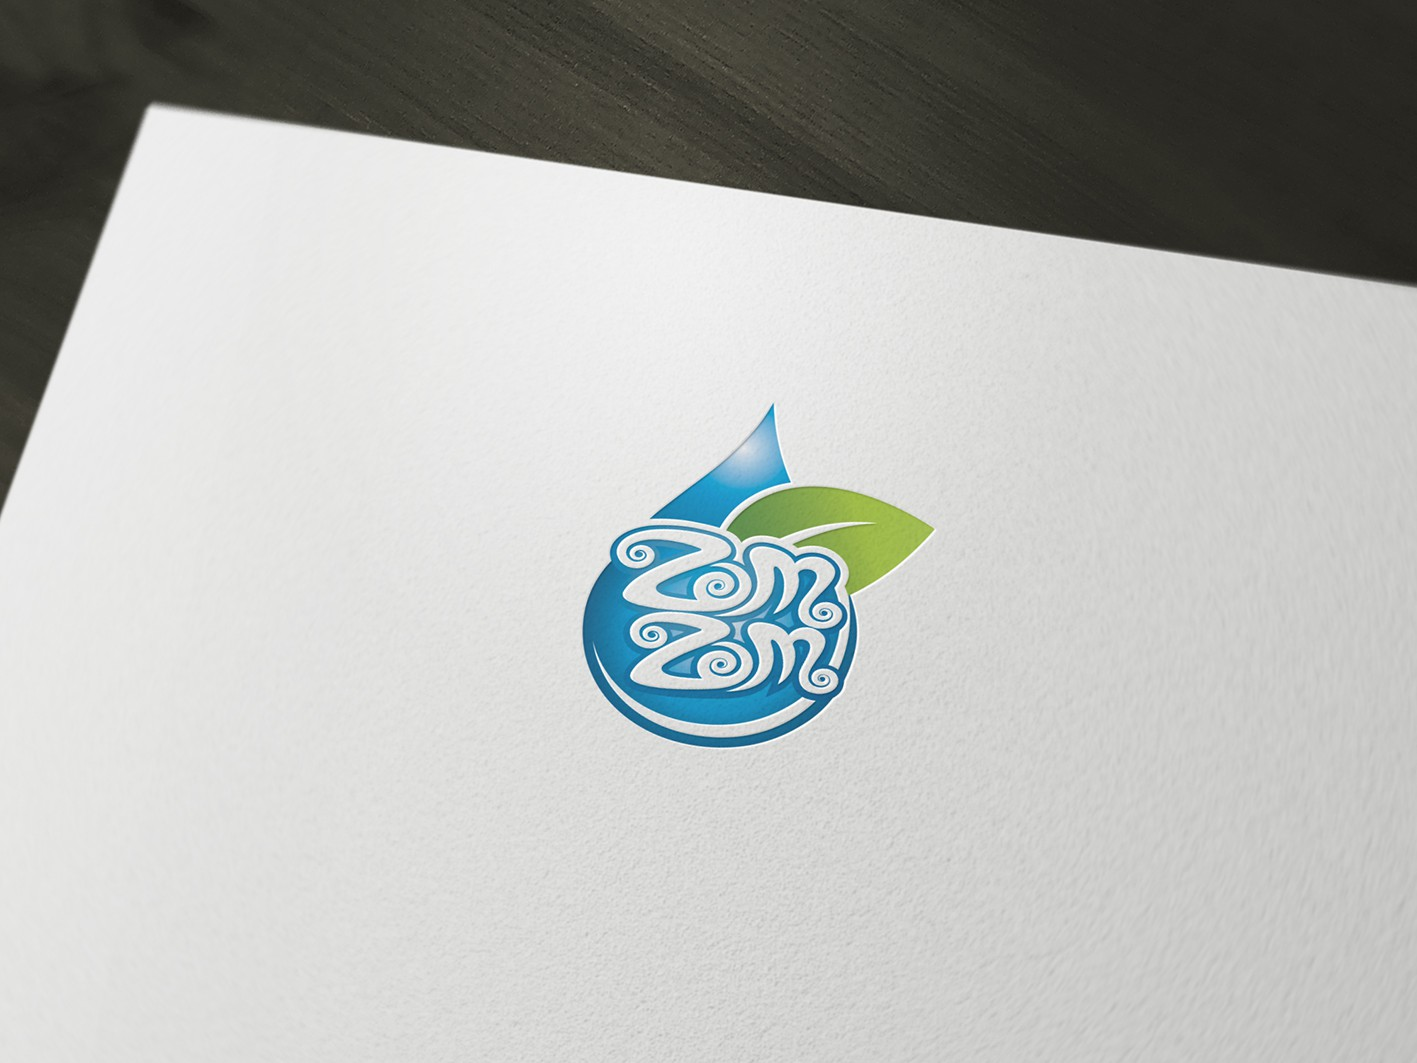 Eye catching unique logo that customers just go for it with love and passion